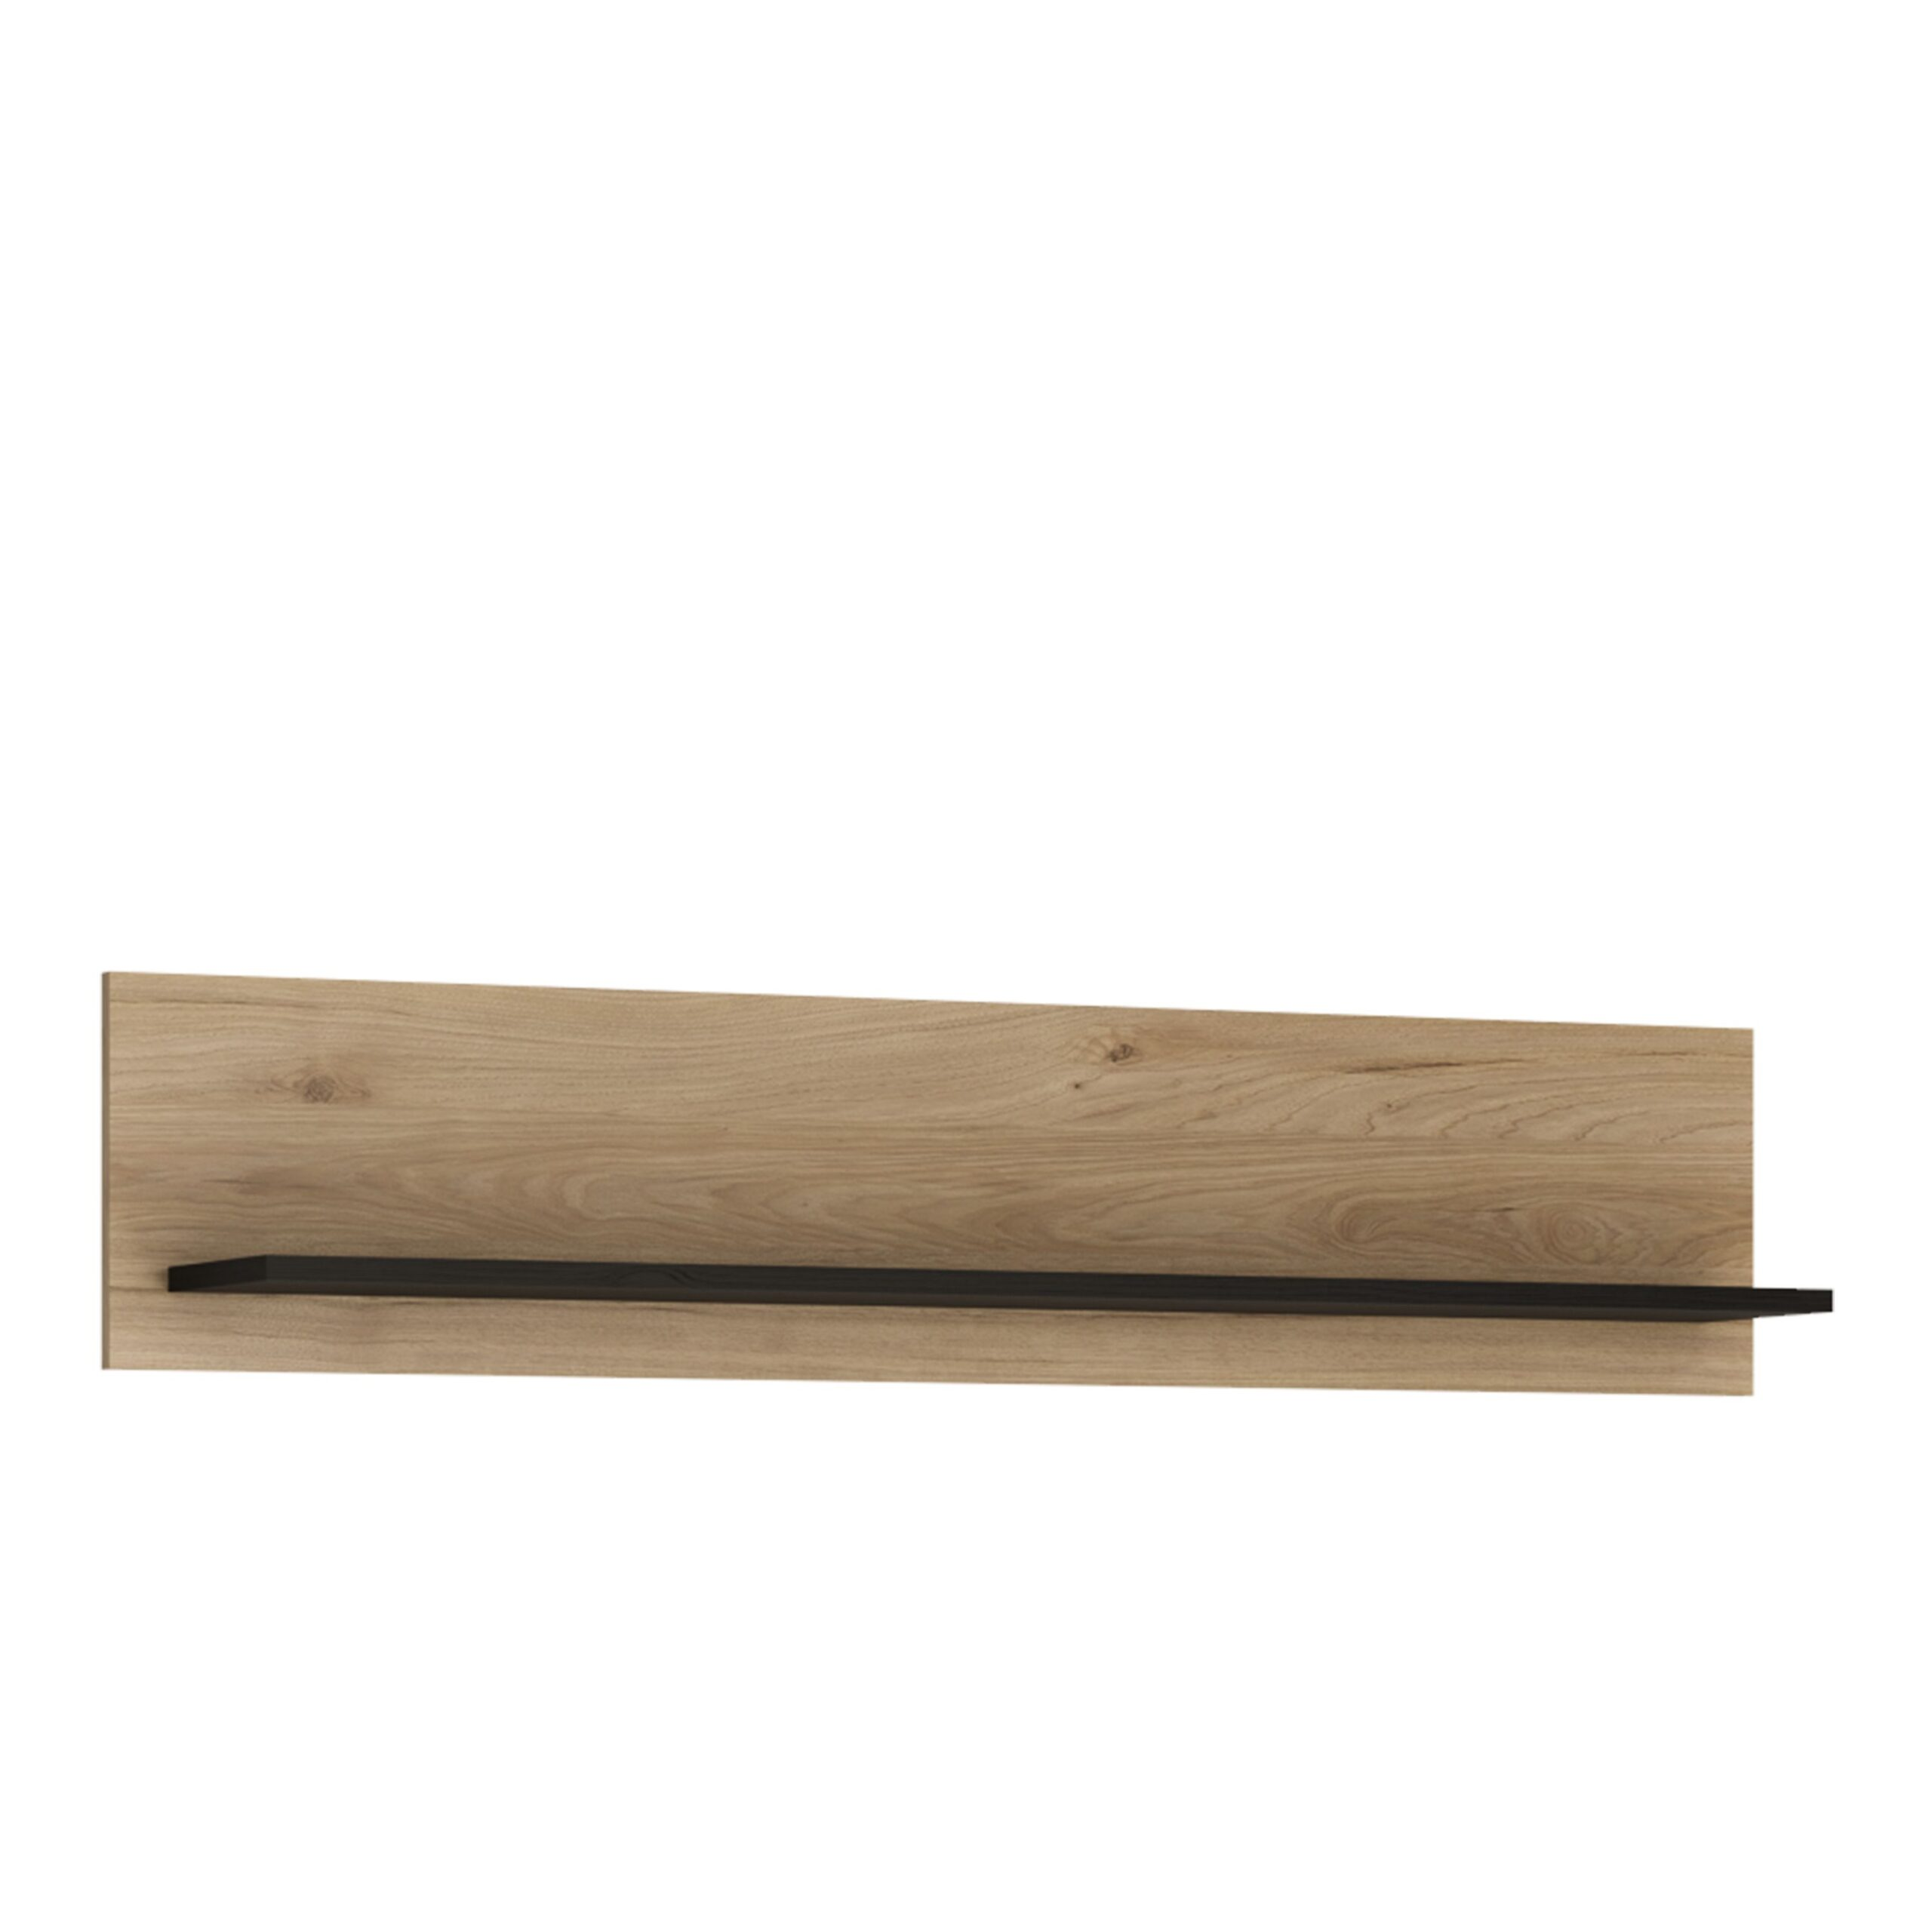 Dobra Wall Shelf - 120cm Wide